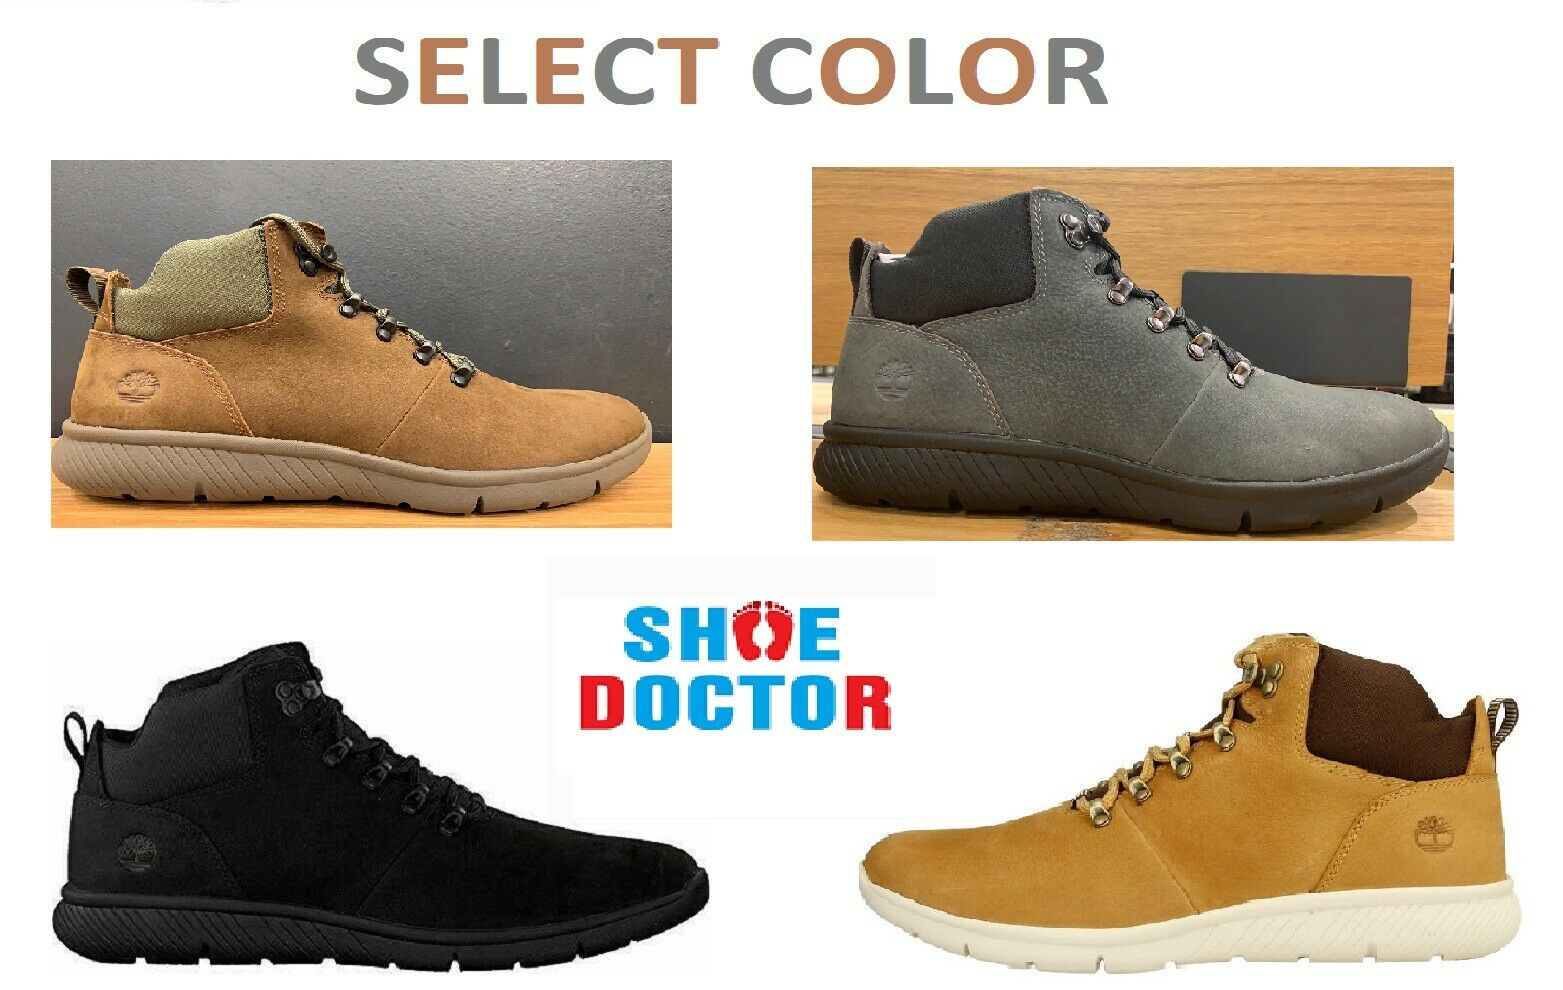 Timberland Boltero Leather Hiker Wr Tortoise Shell Wanderer 12 Wide For Sale Online Ebay